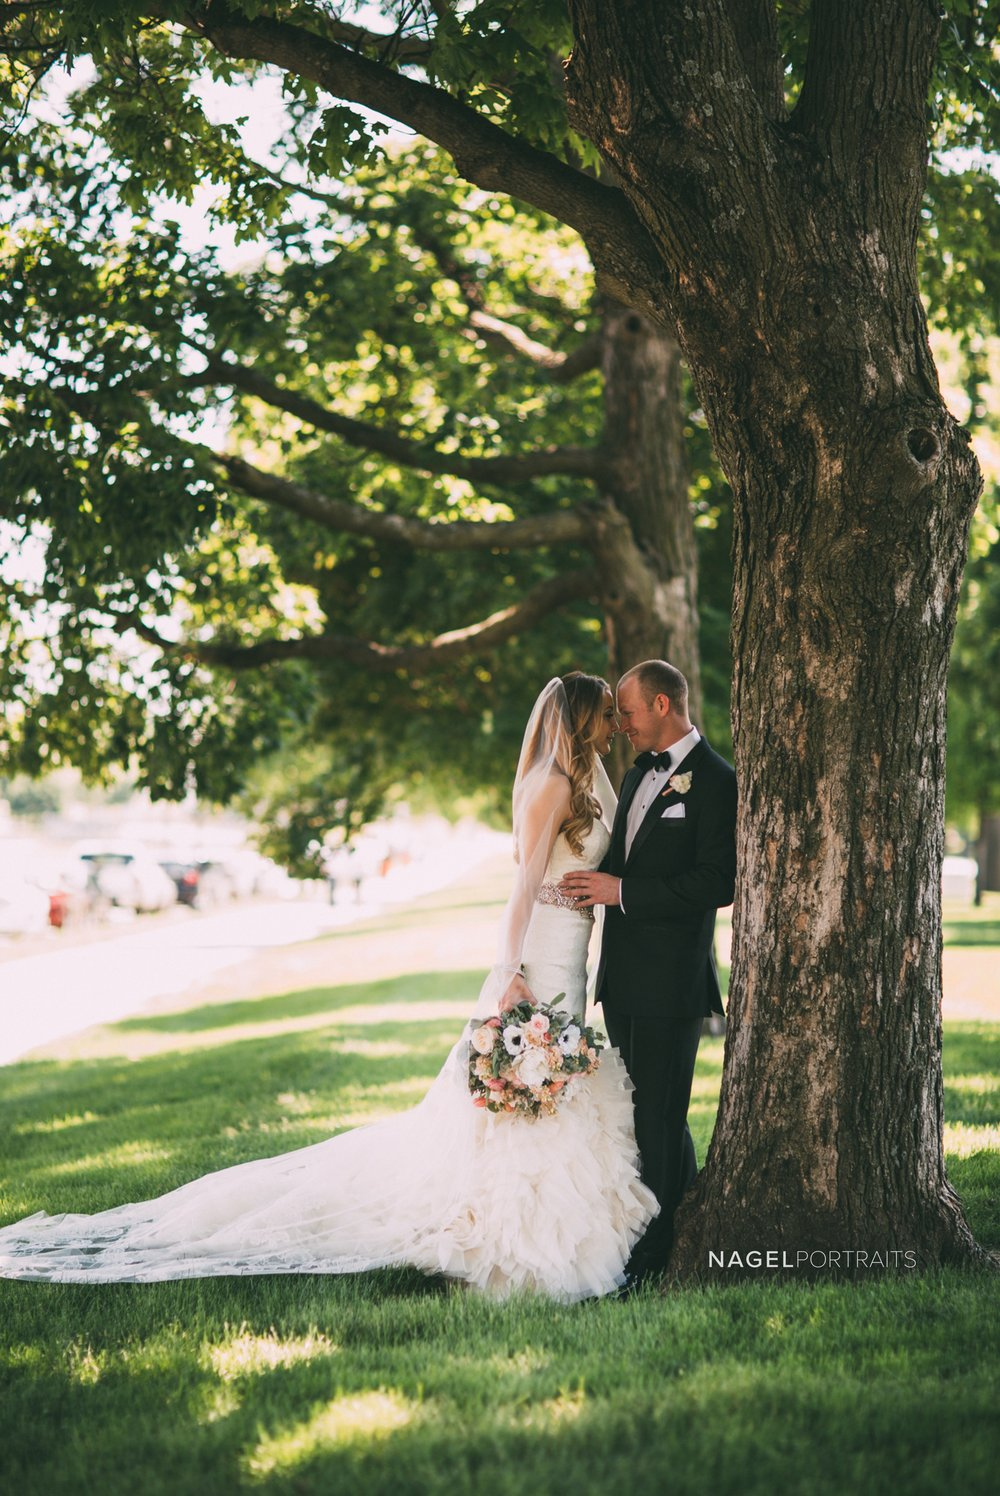 portrait of bride and groom under tree on wedding day